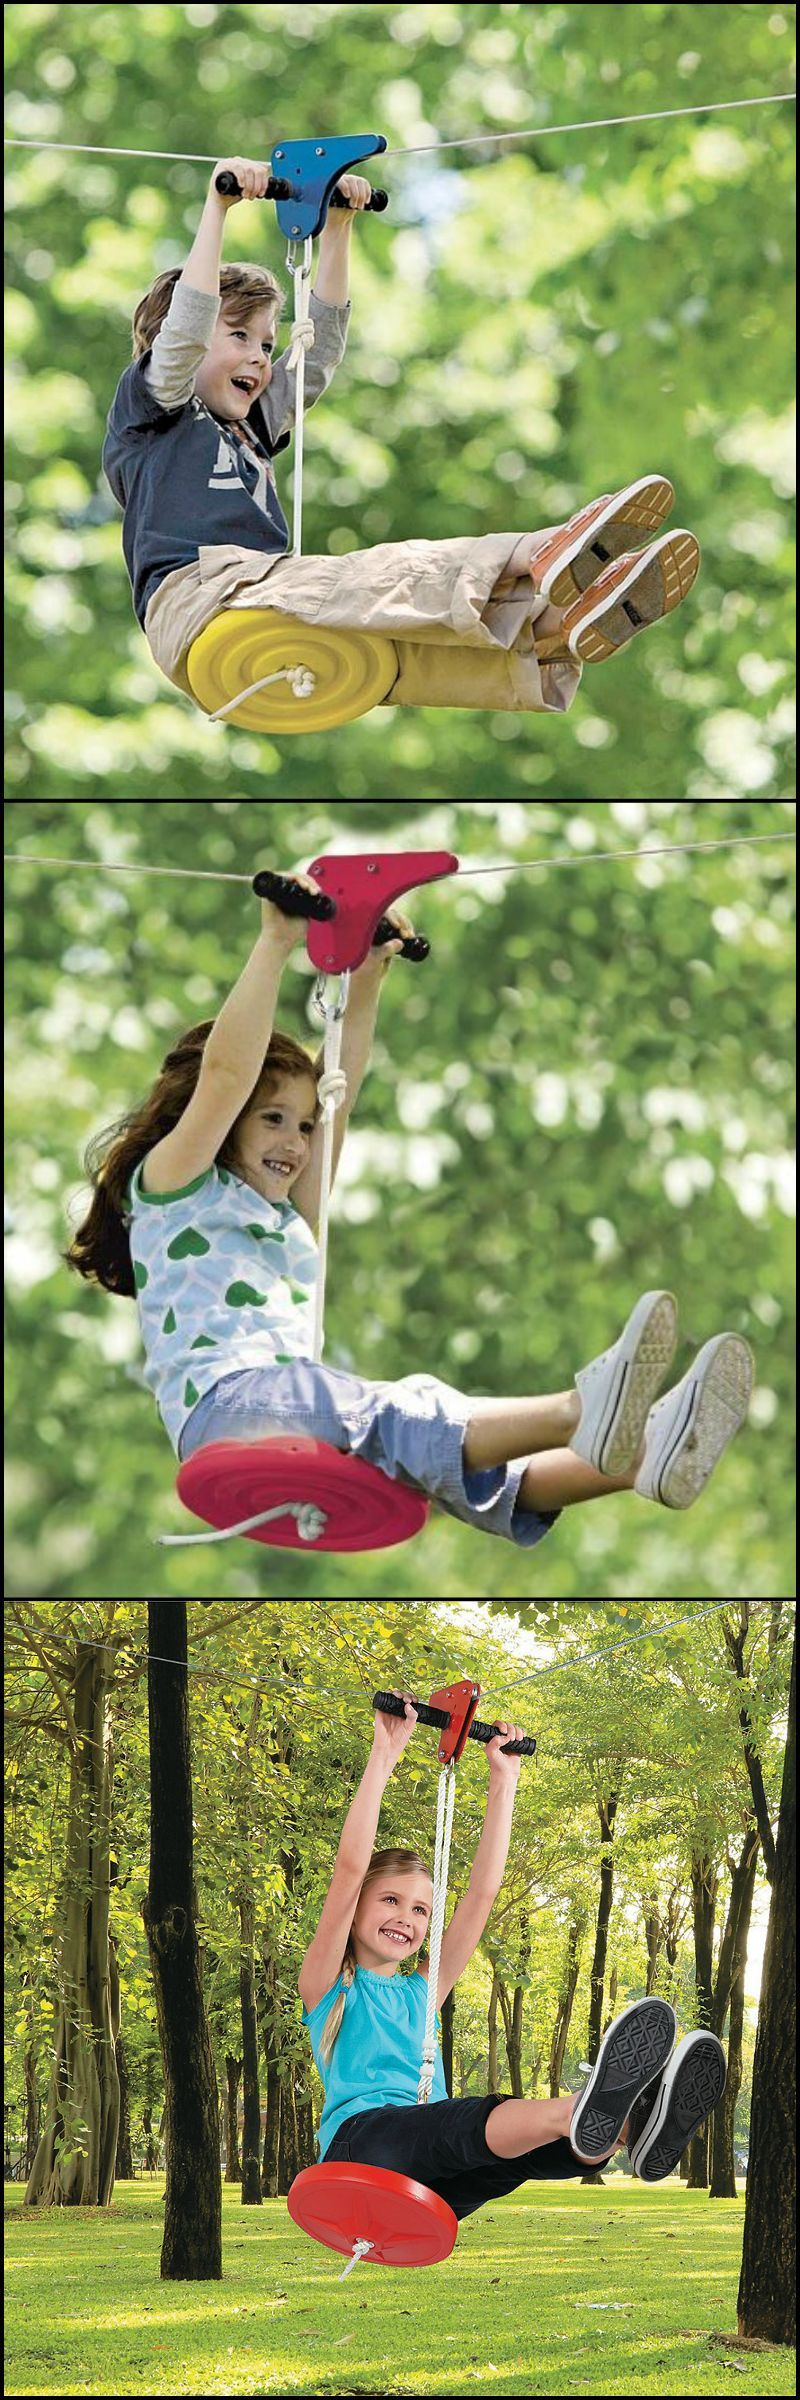 Turn Your Backyard Into An Adventure Park! This Zip Line Kit Is One Of The